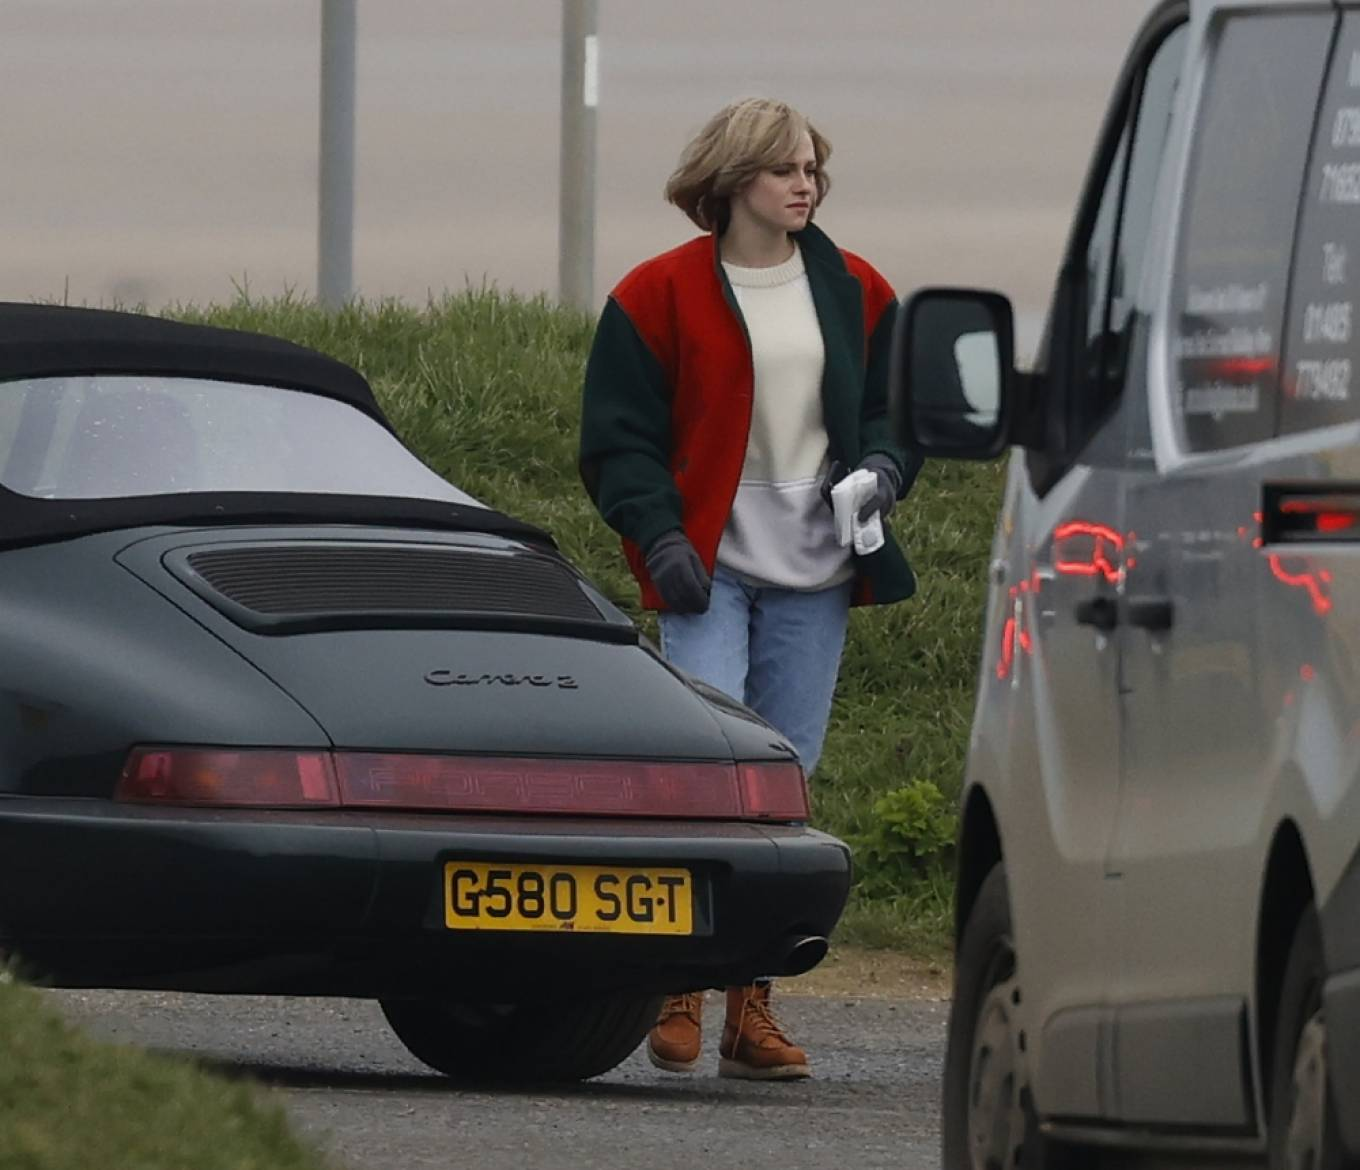 Kristen Stewart - Is seen in character as Princess Diana for a new film in Norfolk